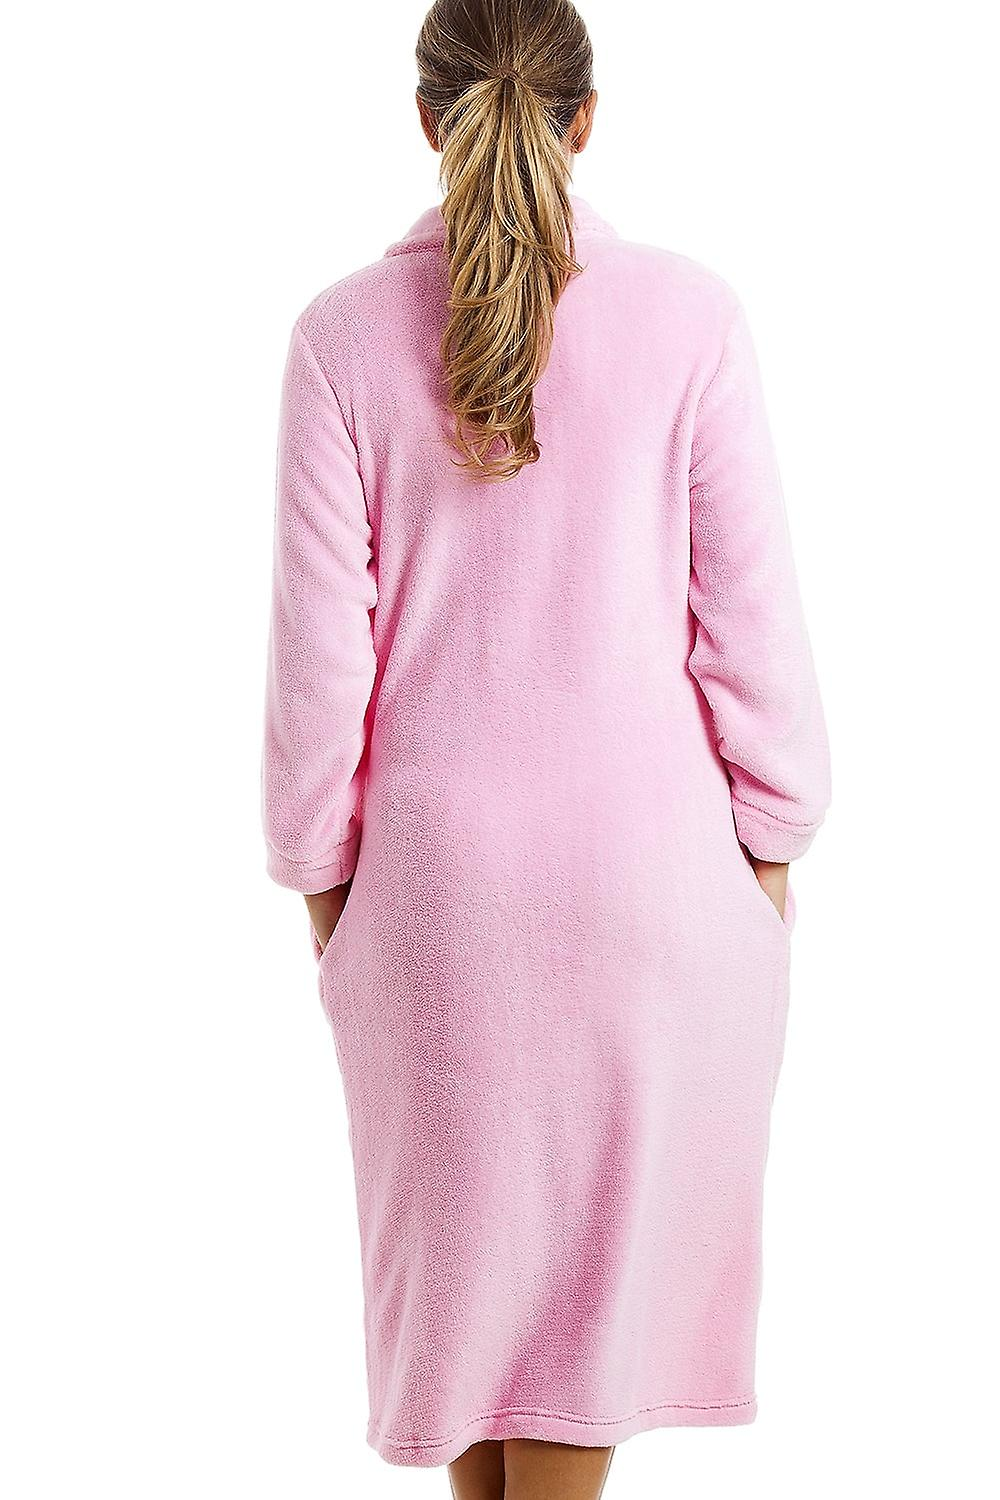 Camille Pink Button Up Front Long Fleece Housecoat